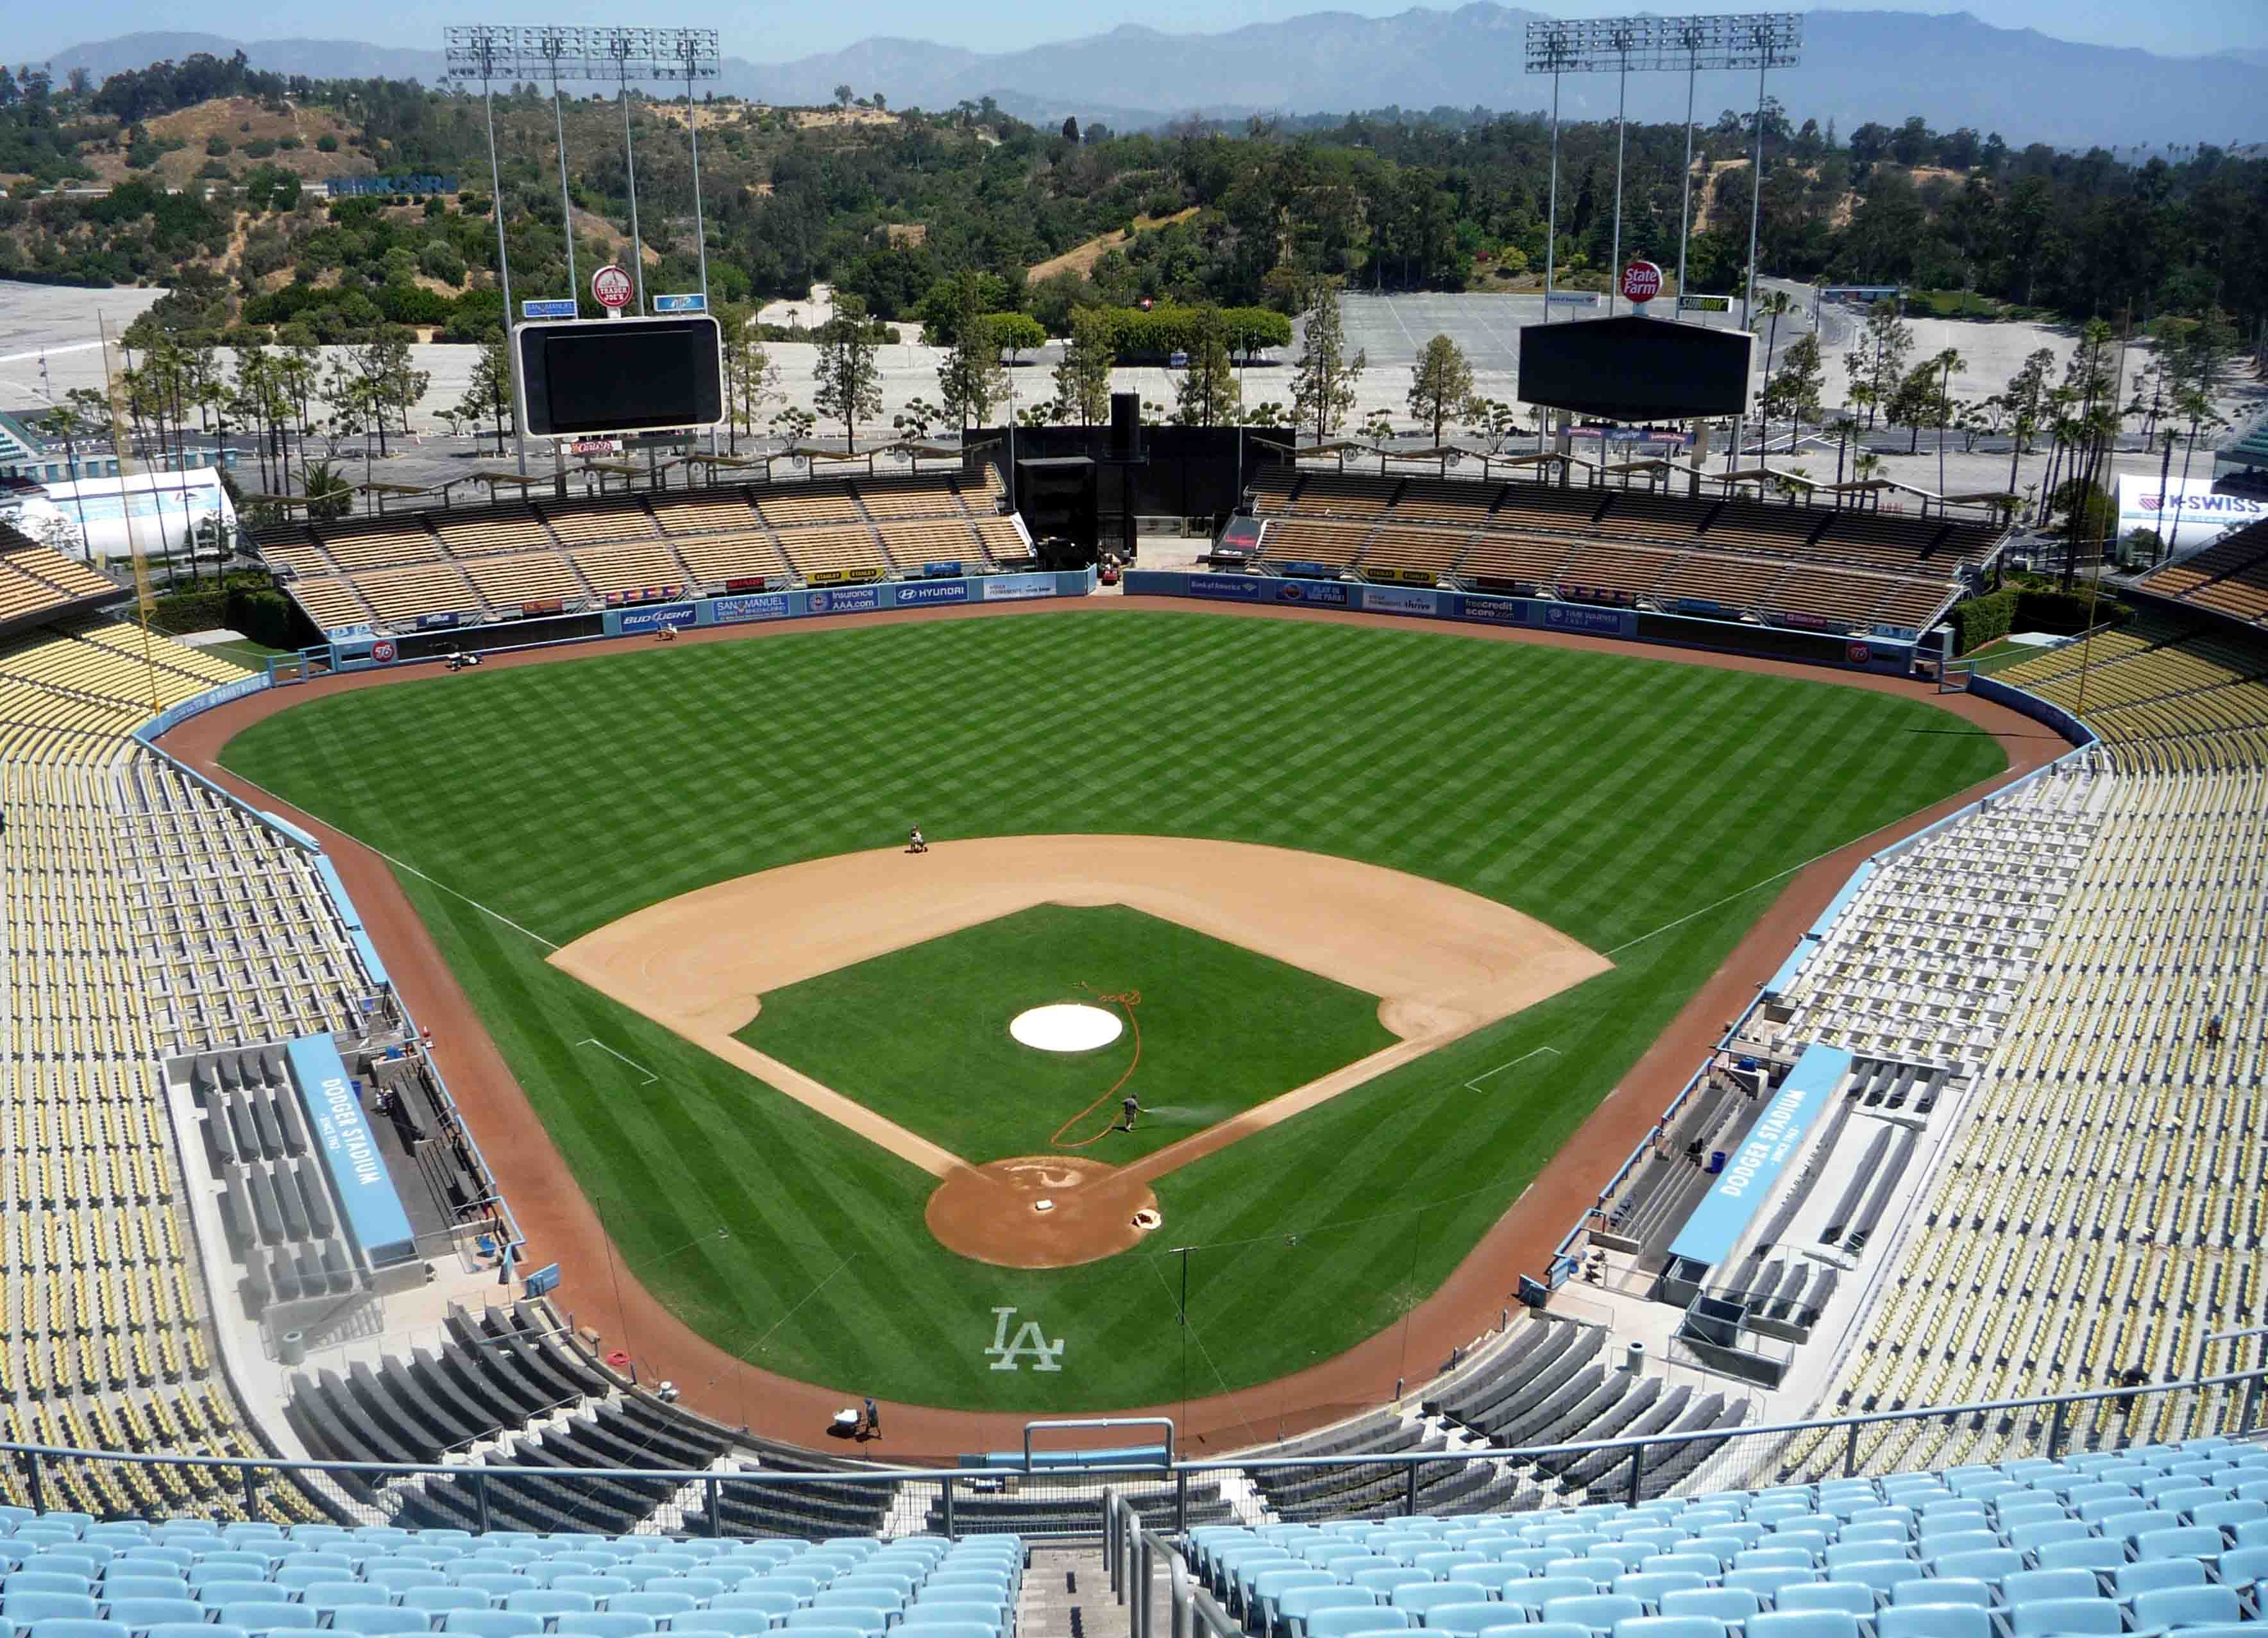 Dodgers Stadium Empty You Don T See That Very Often Dodgersstadium Dodger Stadium Dodgers Baseball Season